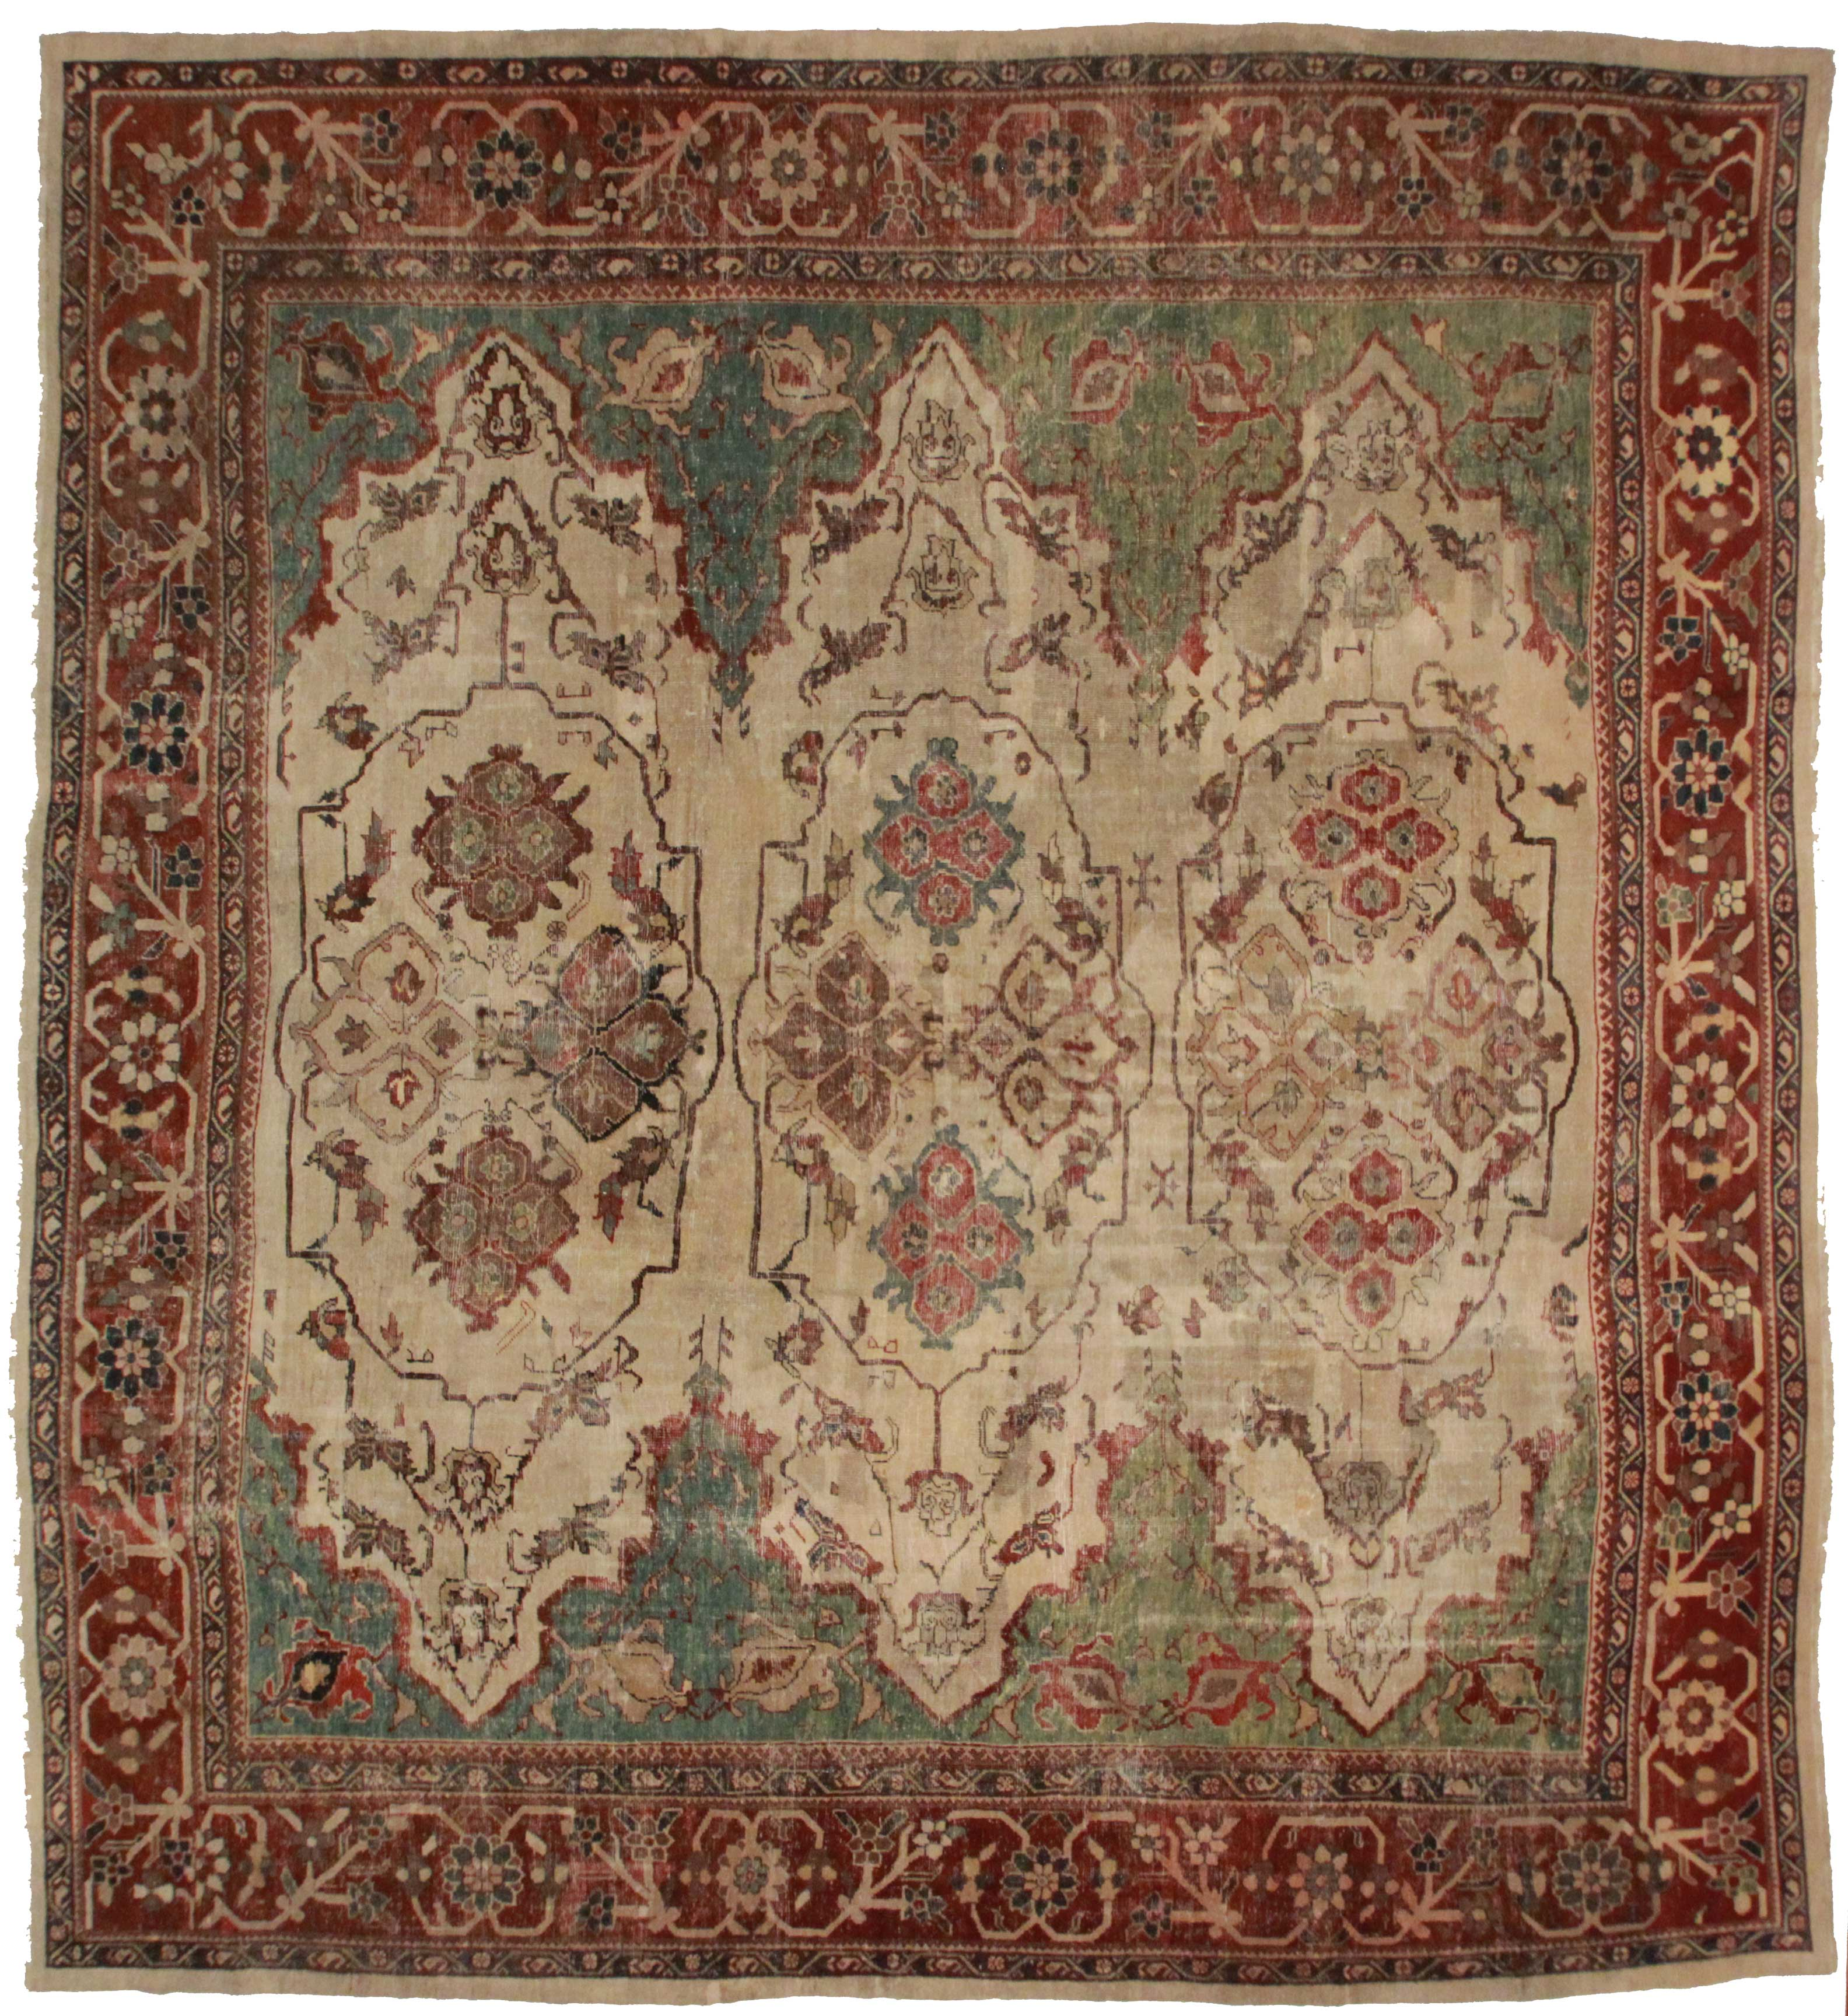 14344 Antique Russian Rug 12 X 14 Persian Sultanabad